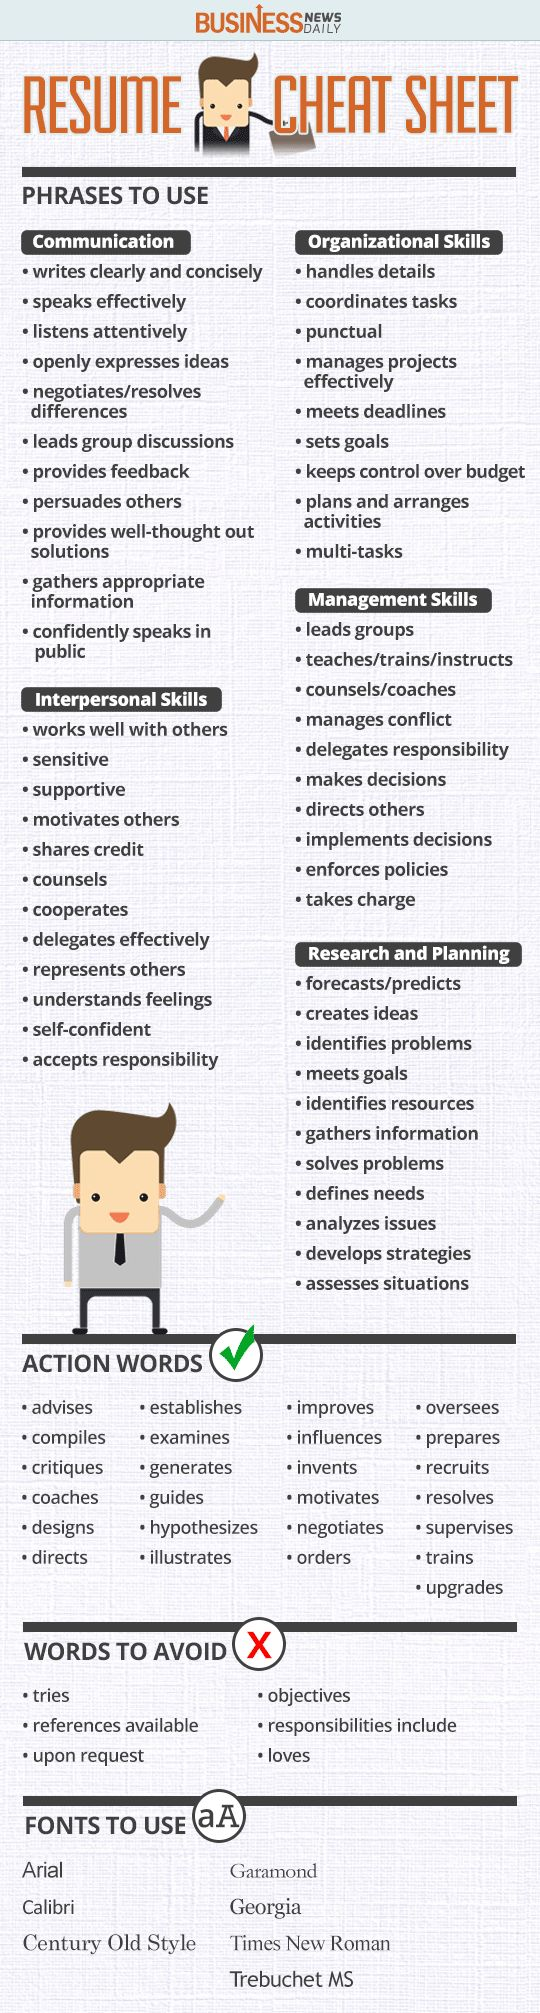 Opposenewapstandardsus  Remarkable  Ideas About Resume On Pinterest  Cv Format Resume Cv And  With Lovely Resume Cheat Sheet Infographic Andrews Almost Done With A Complete Unit On Employment Which With Comely Engineering Internship Resume Also How To Write Up A Resume In Addition Resume For Recent College Graduate And Objective Statement Resume Examples As Well As How To Upload Resume Additionally Example Of Objective In Resume From Pinterestcom With Opposenewapstandardsus  Lovely  Ideas About Resume On Pinterest  Cv Format Resume Cv And  With Comely Resume Cheat Sheet Infographic Andrews Almost Done With A Complete Unit On Employment Which And Remarkable Engineering Internship Resume Also How To Write Up A Resume In Addition Resume For Recent College Graduate From Pinterestcom